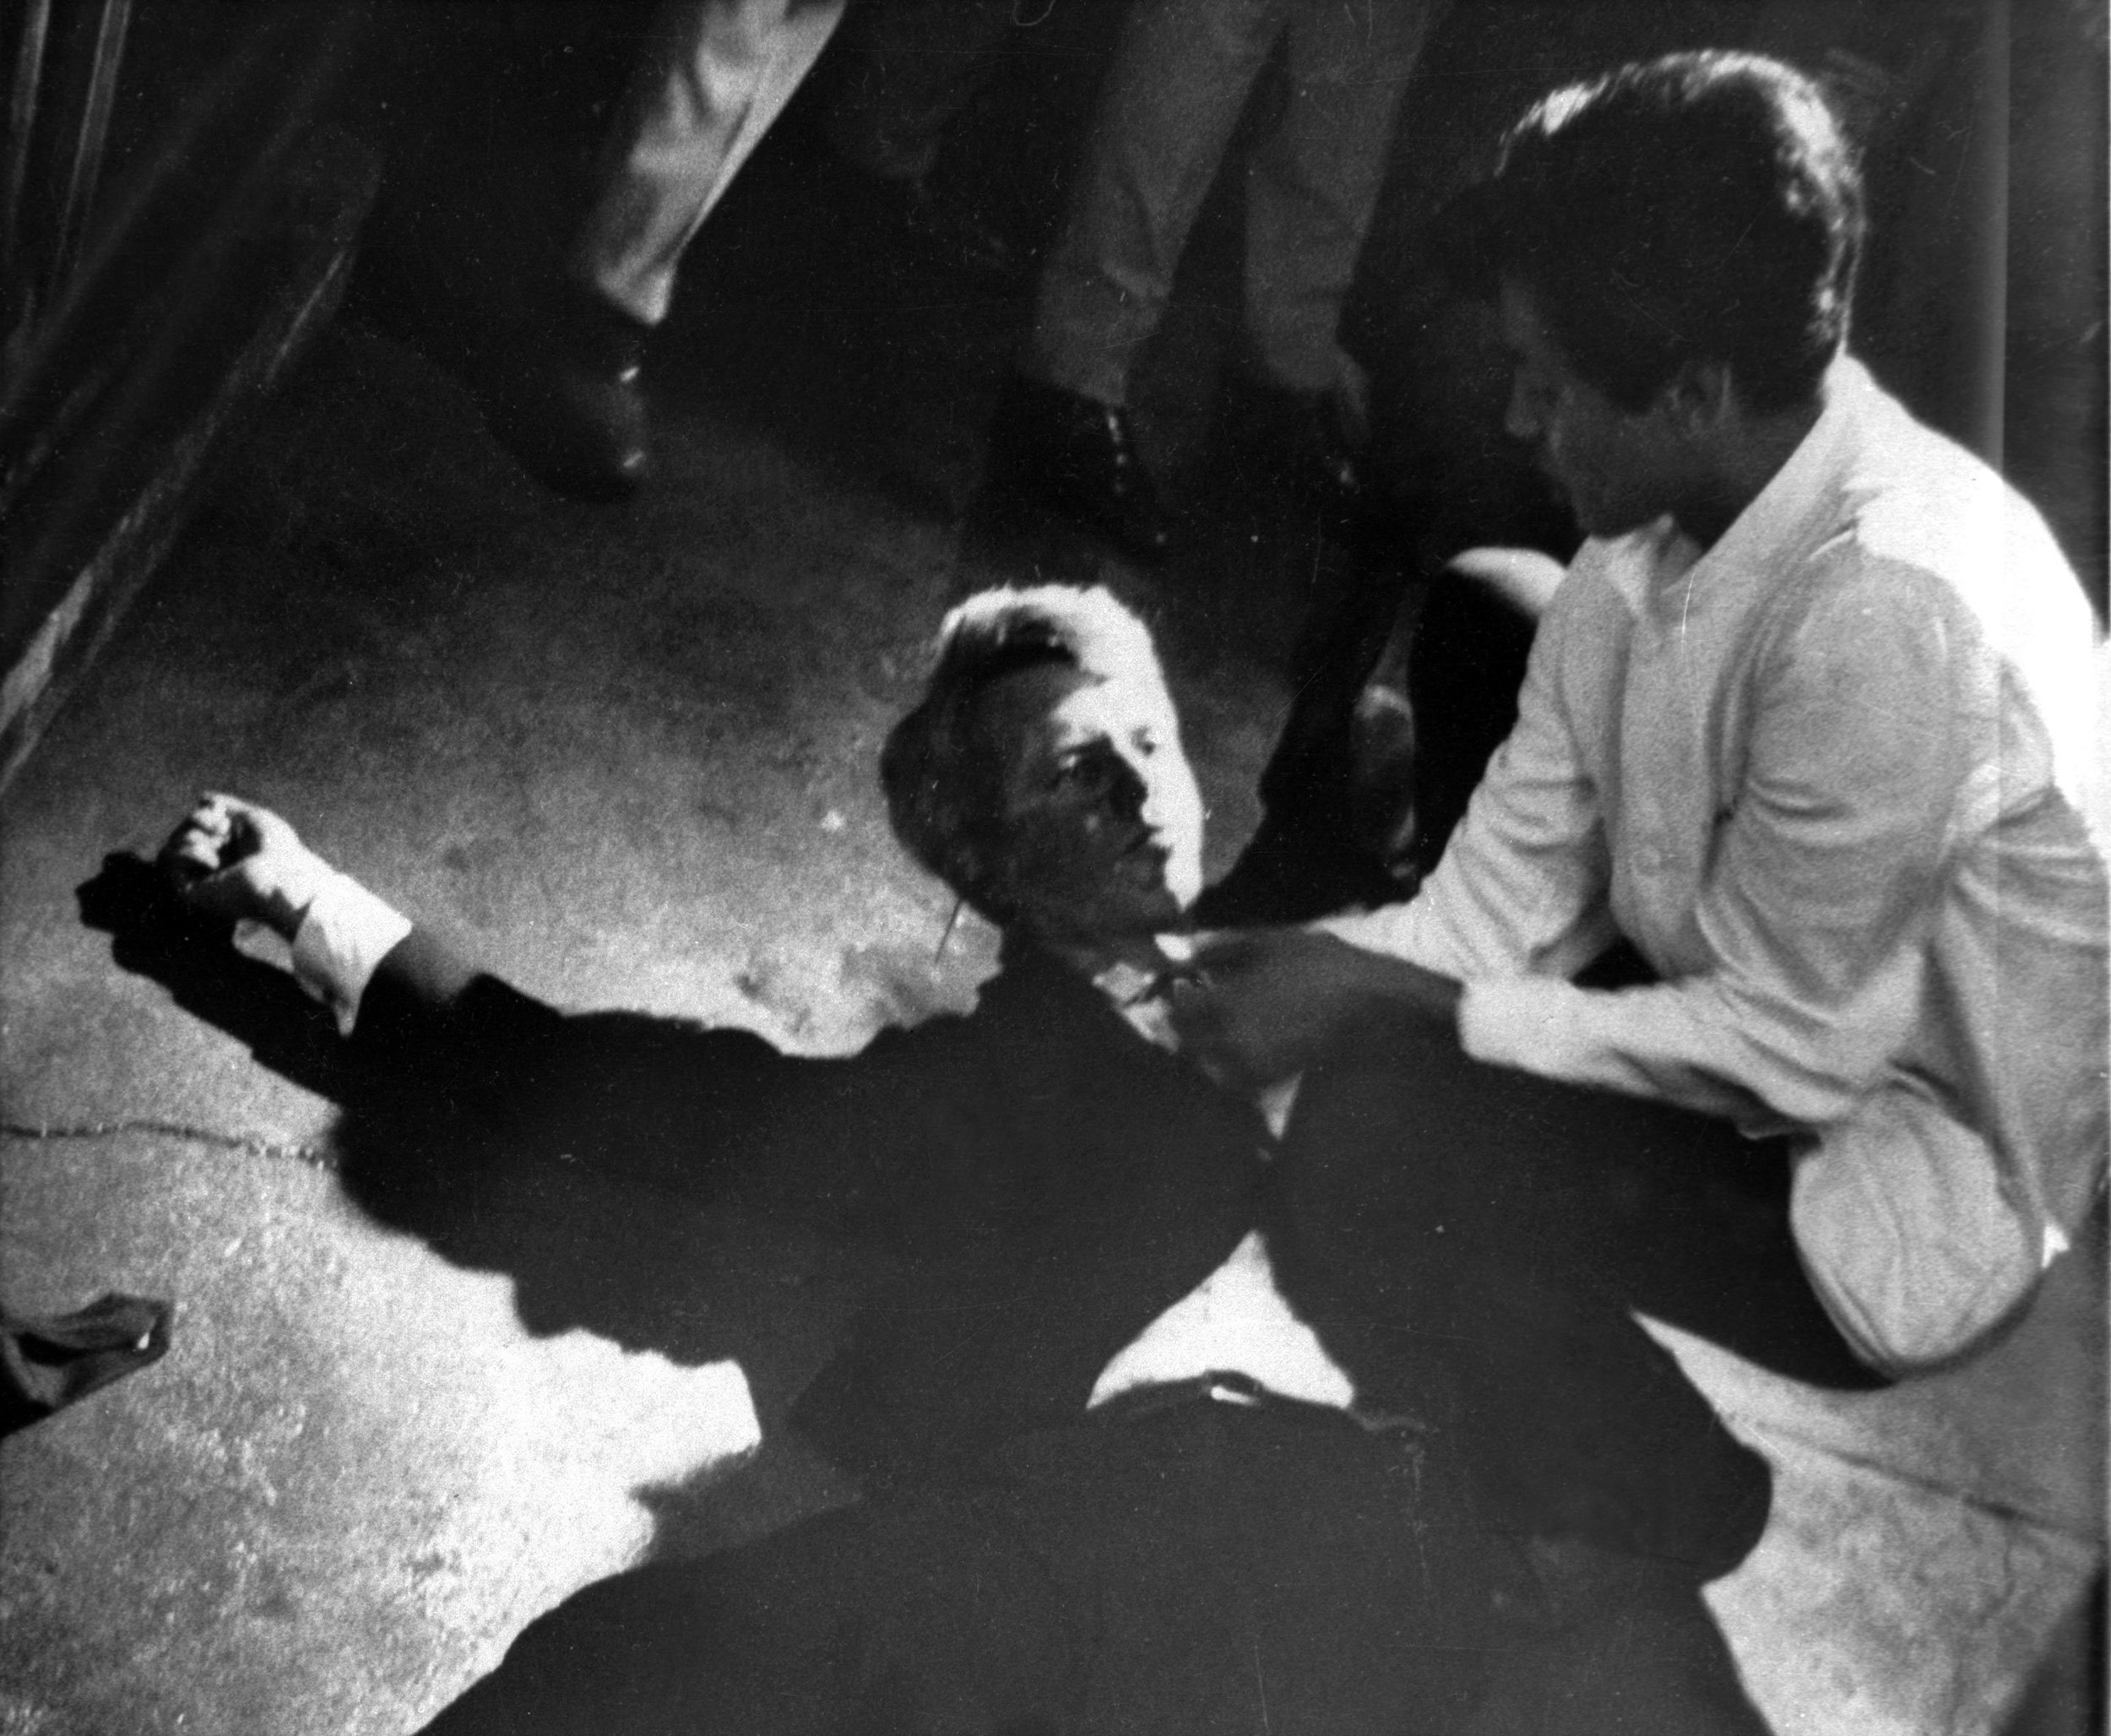 RFK 50 years later: A look back at the assassination of Bobby Kennedy